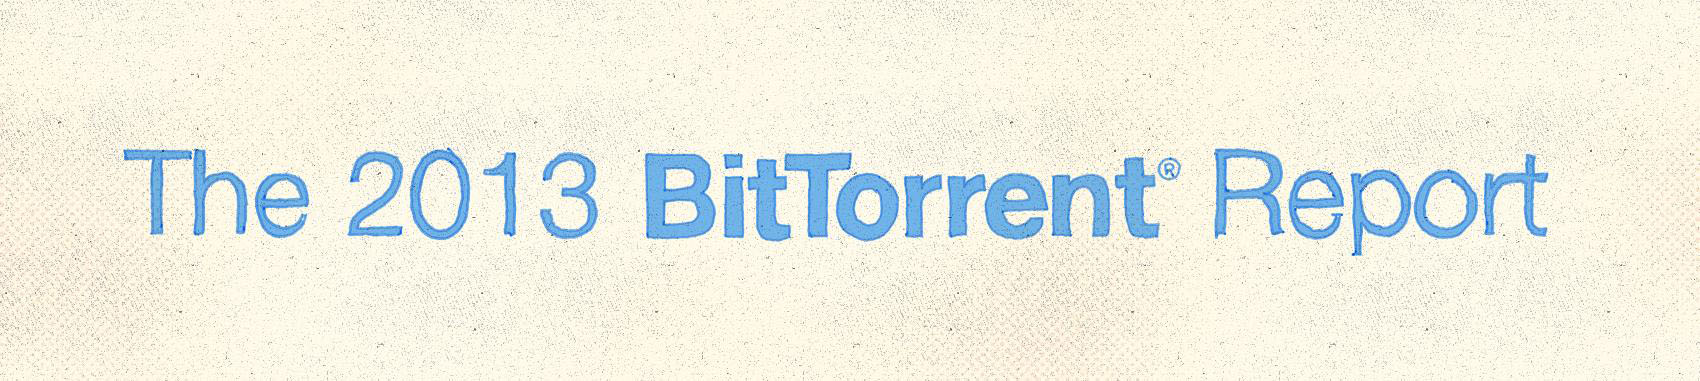 2013 bittorrent report